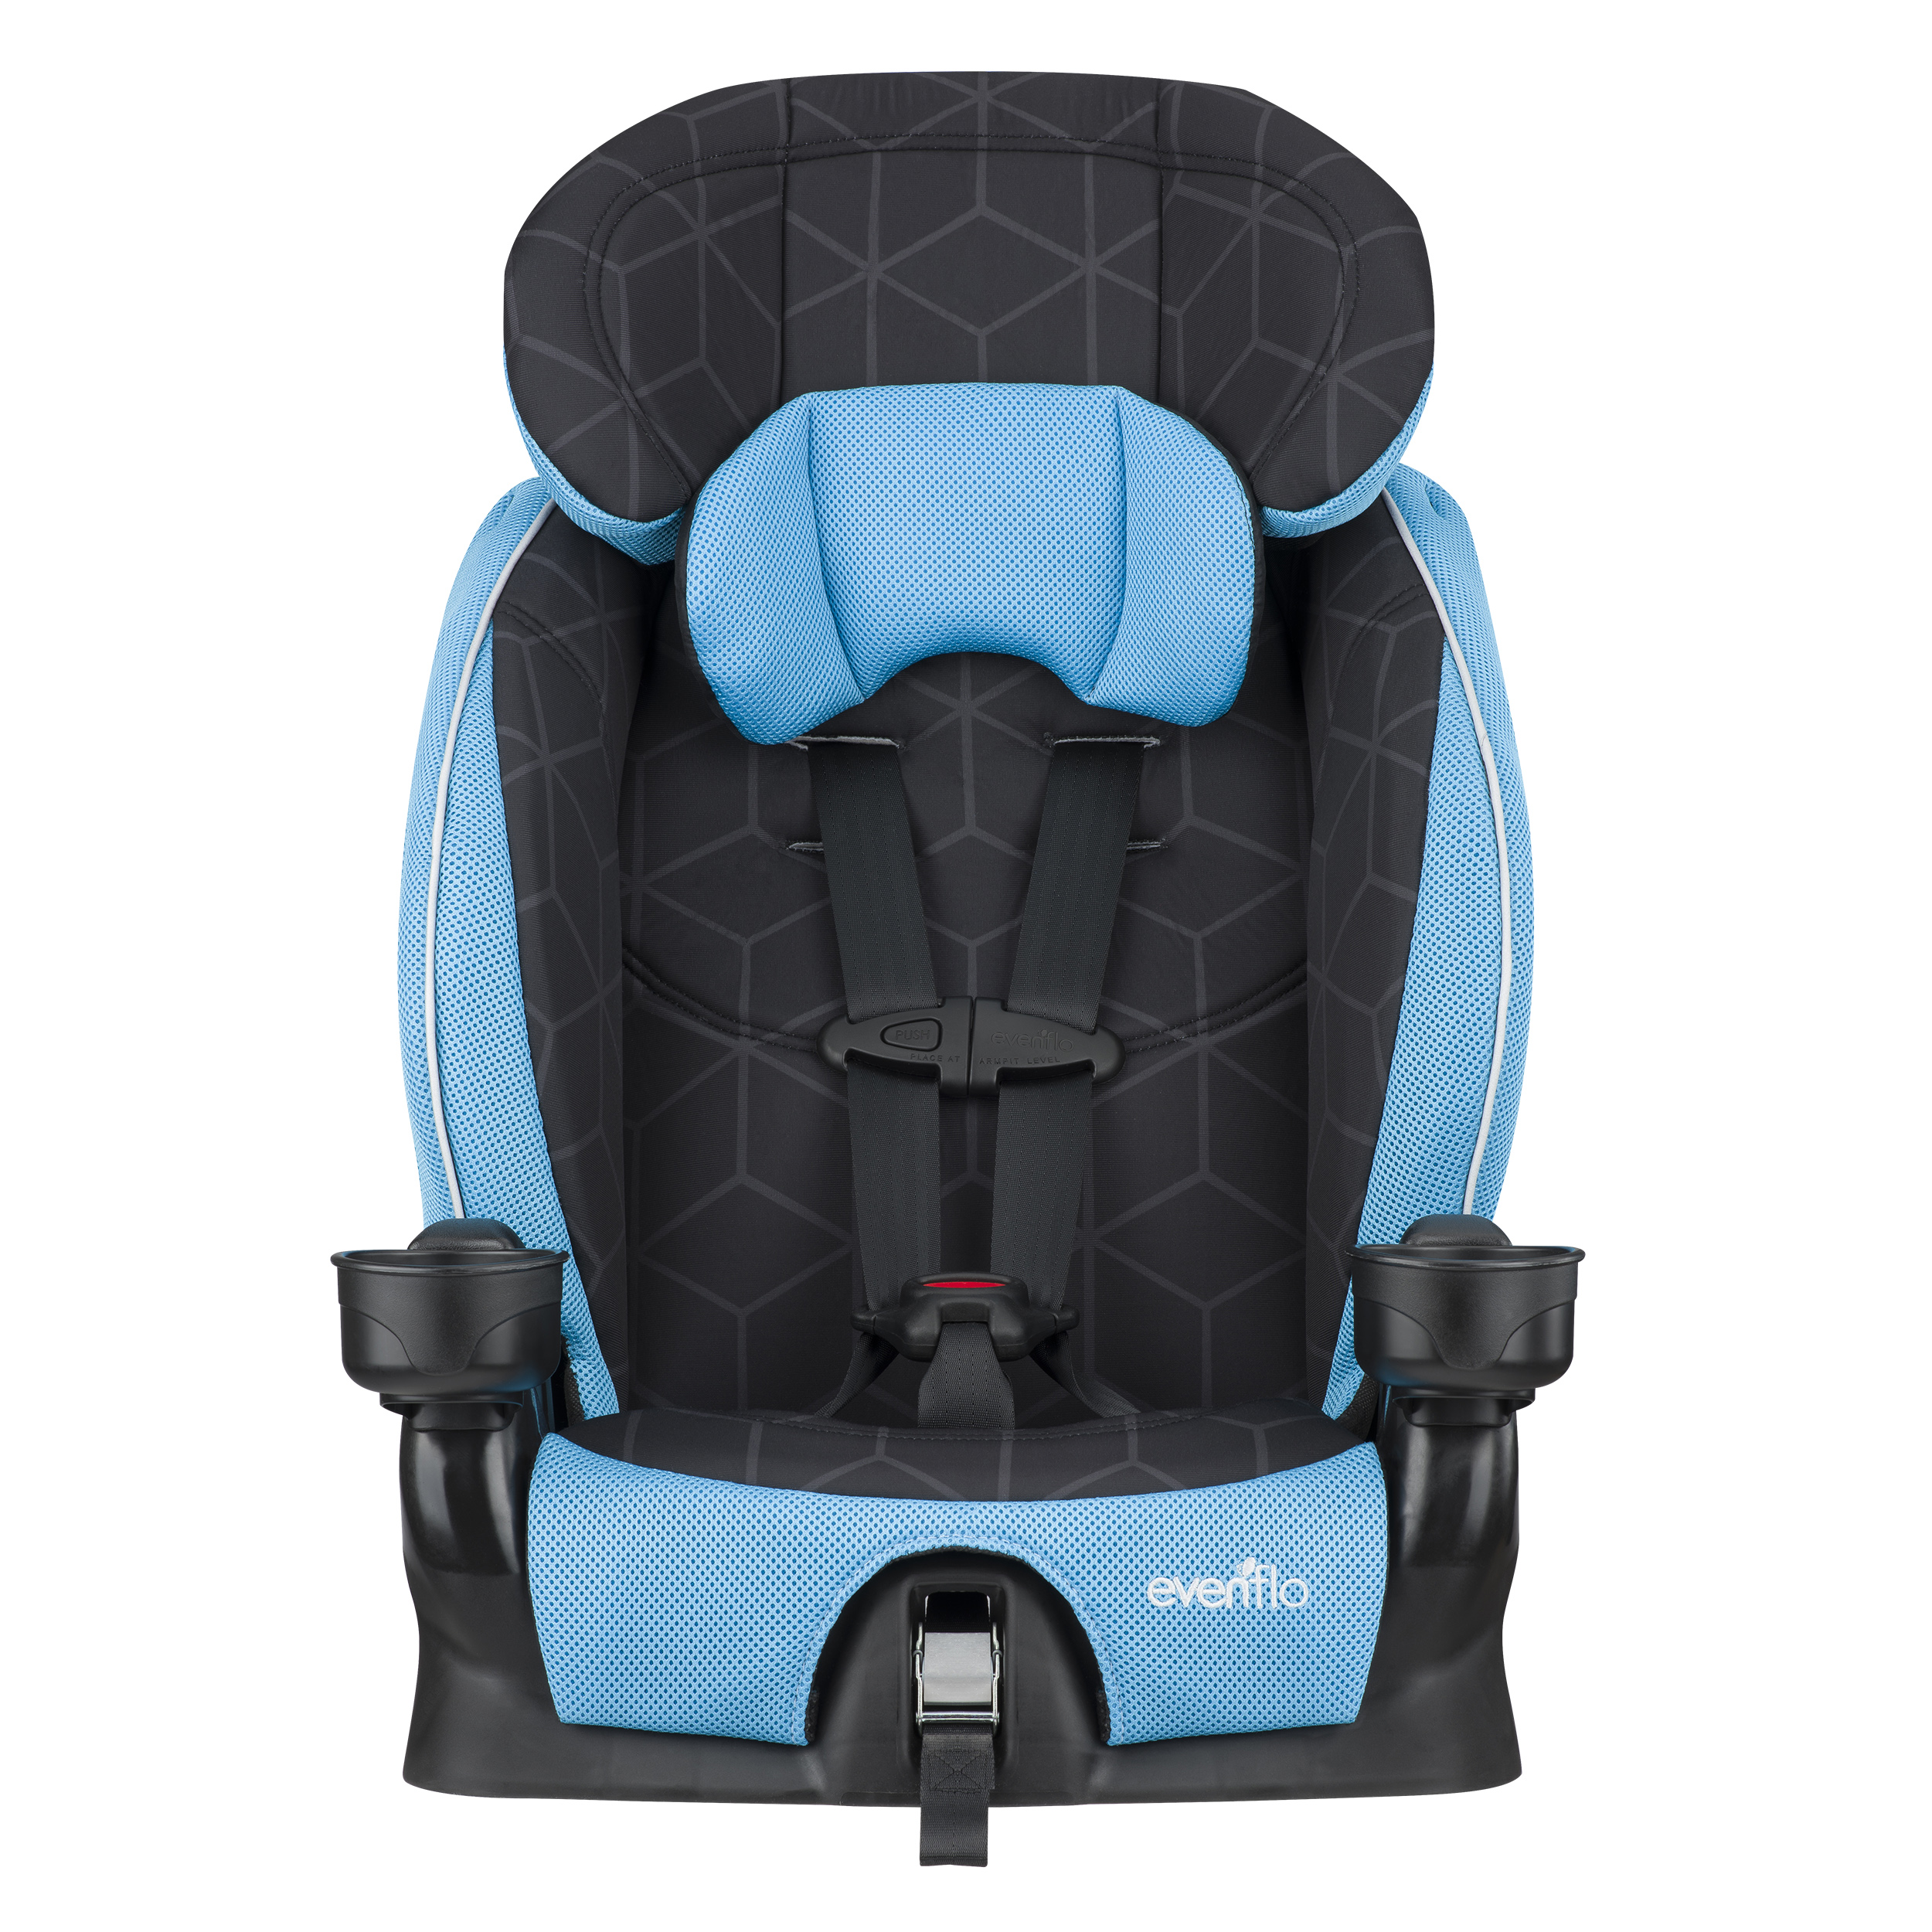 Evenflo Advanced Harness Booster Seat, Glacier Ice by Evenflo